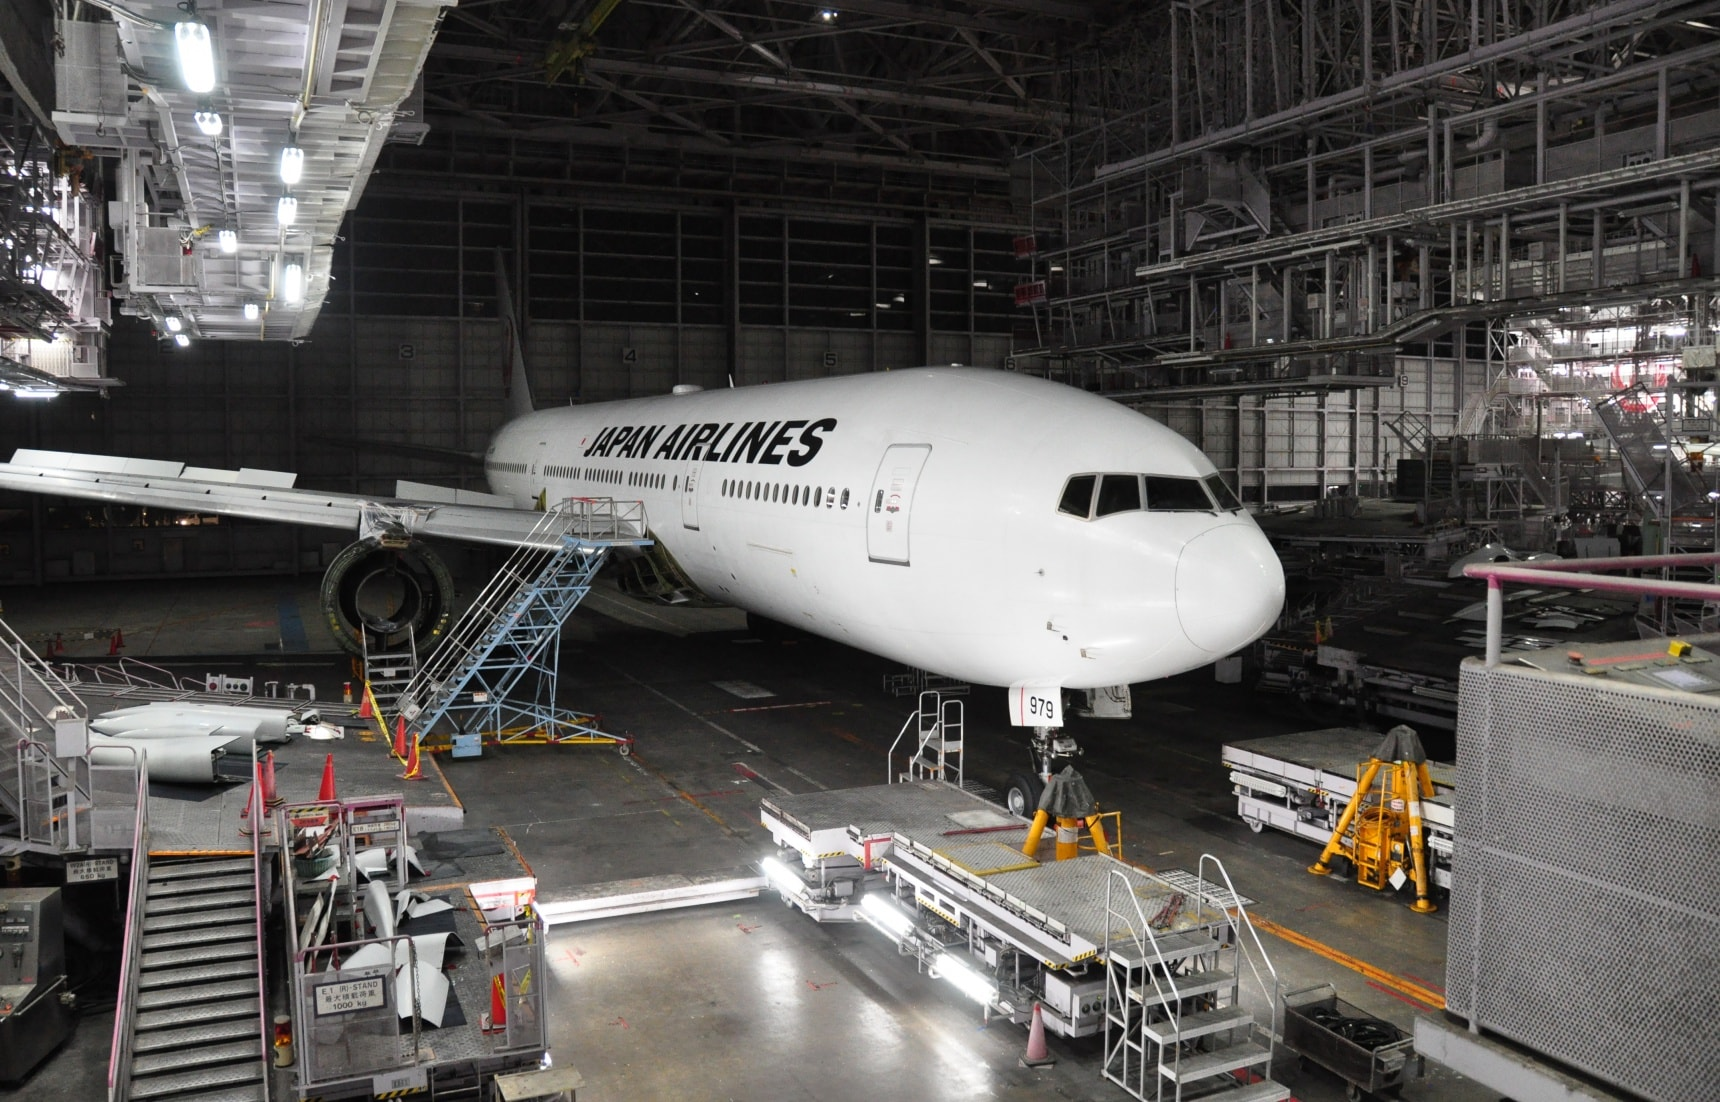 How to Hang Out in a Hangar at Haneda